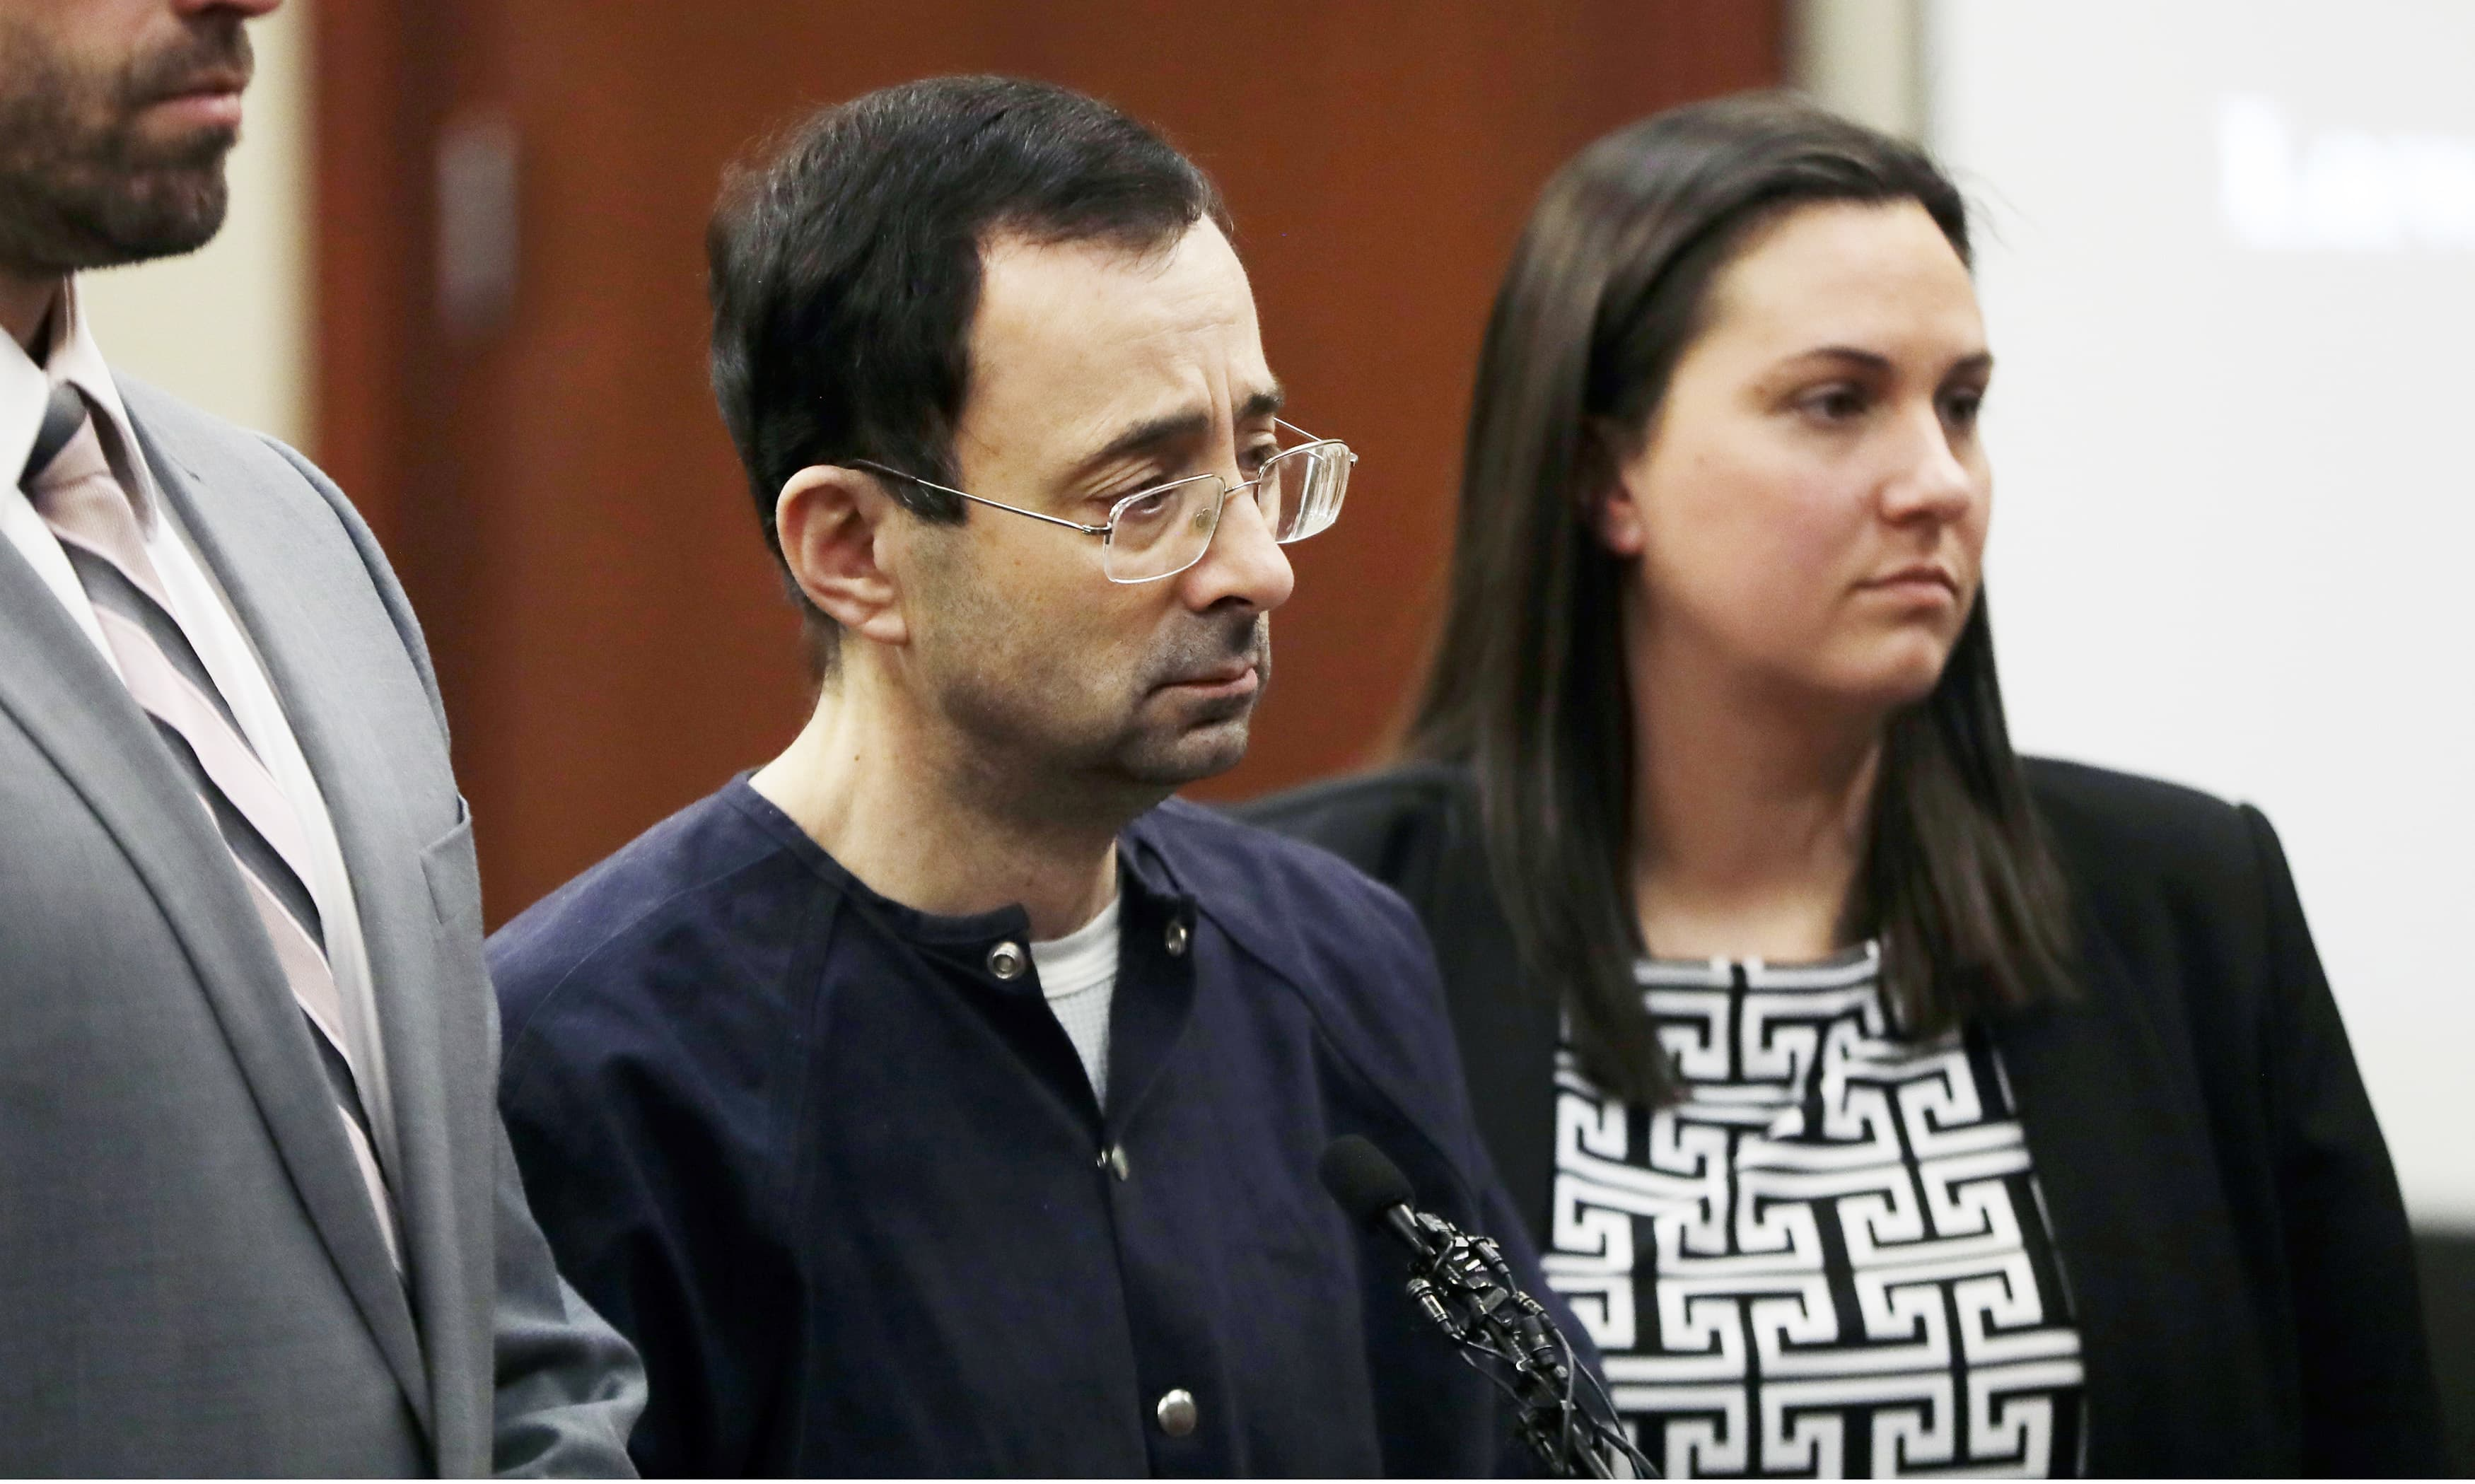 Up to 175 years in jail for disgraced USA Gymnastics doctor